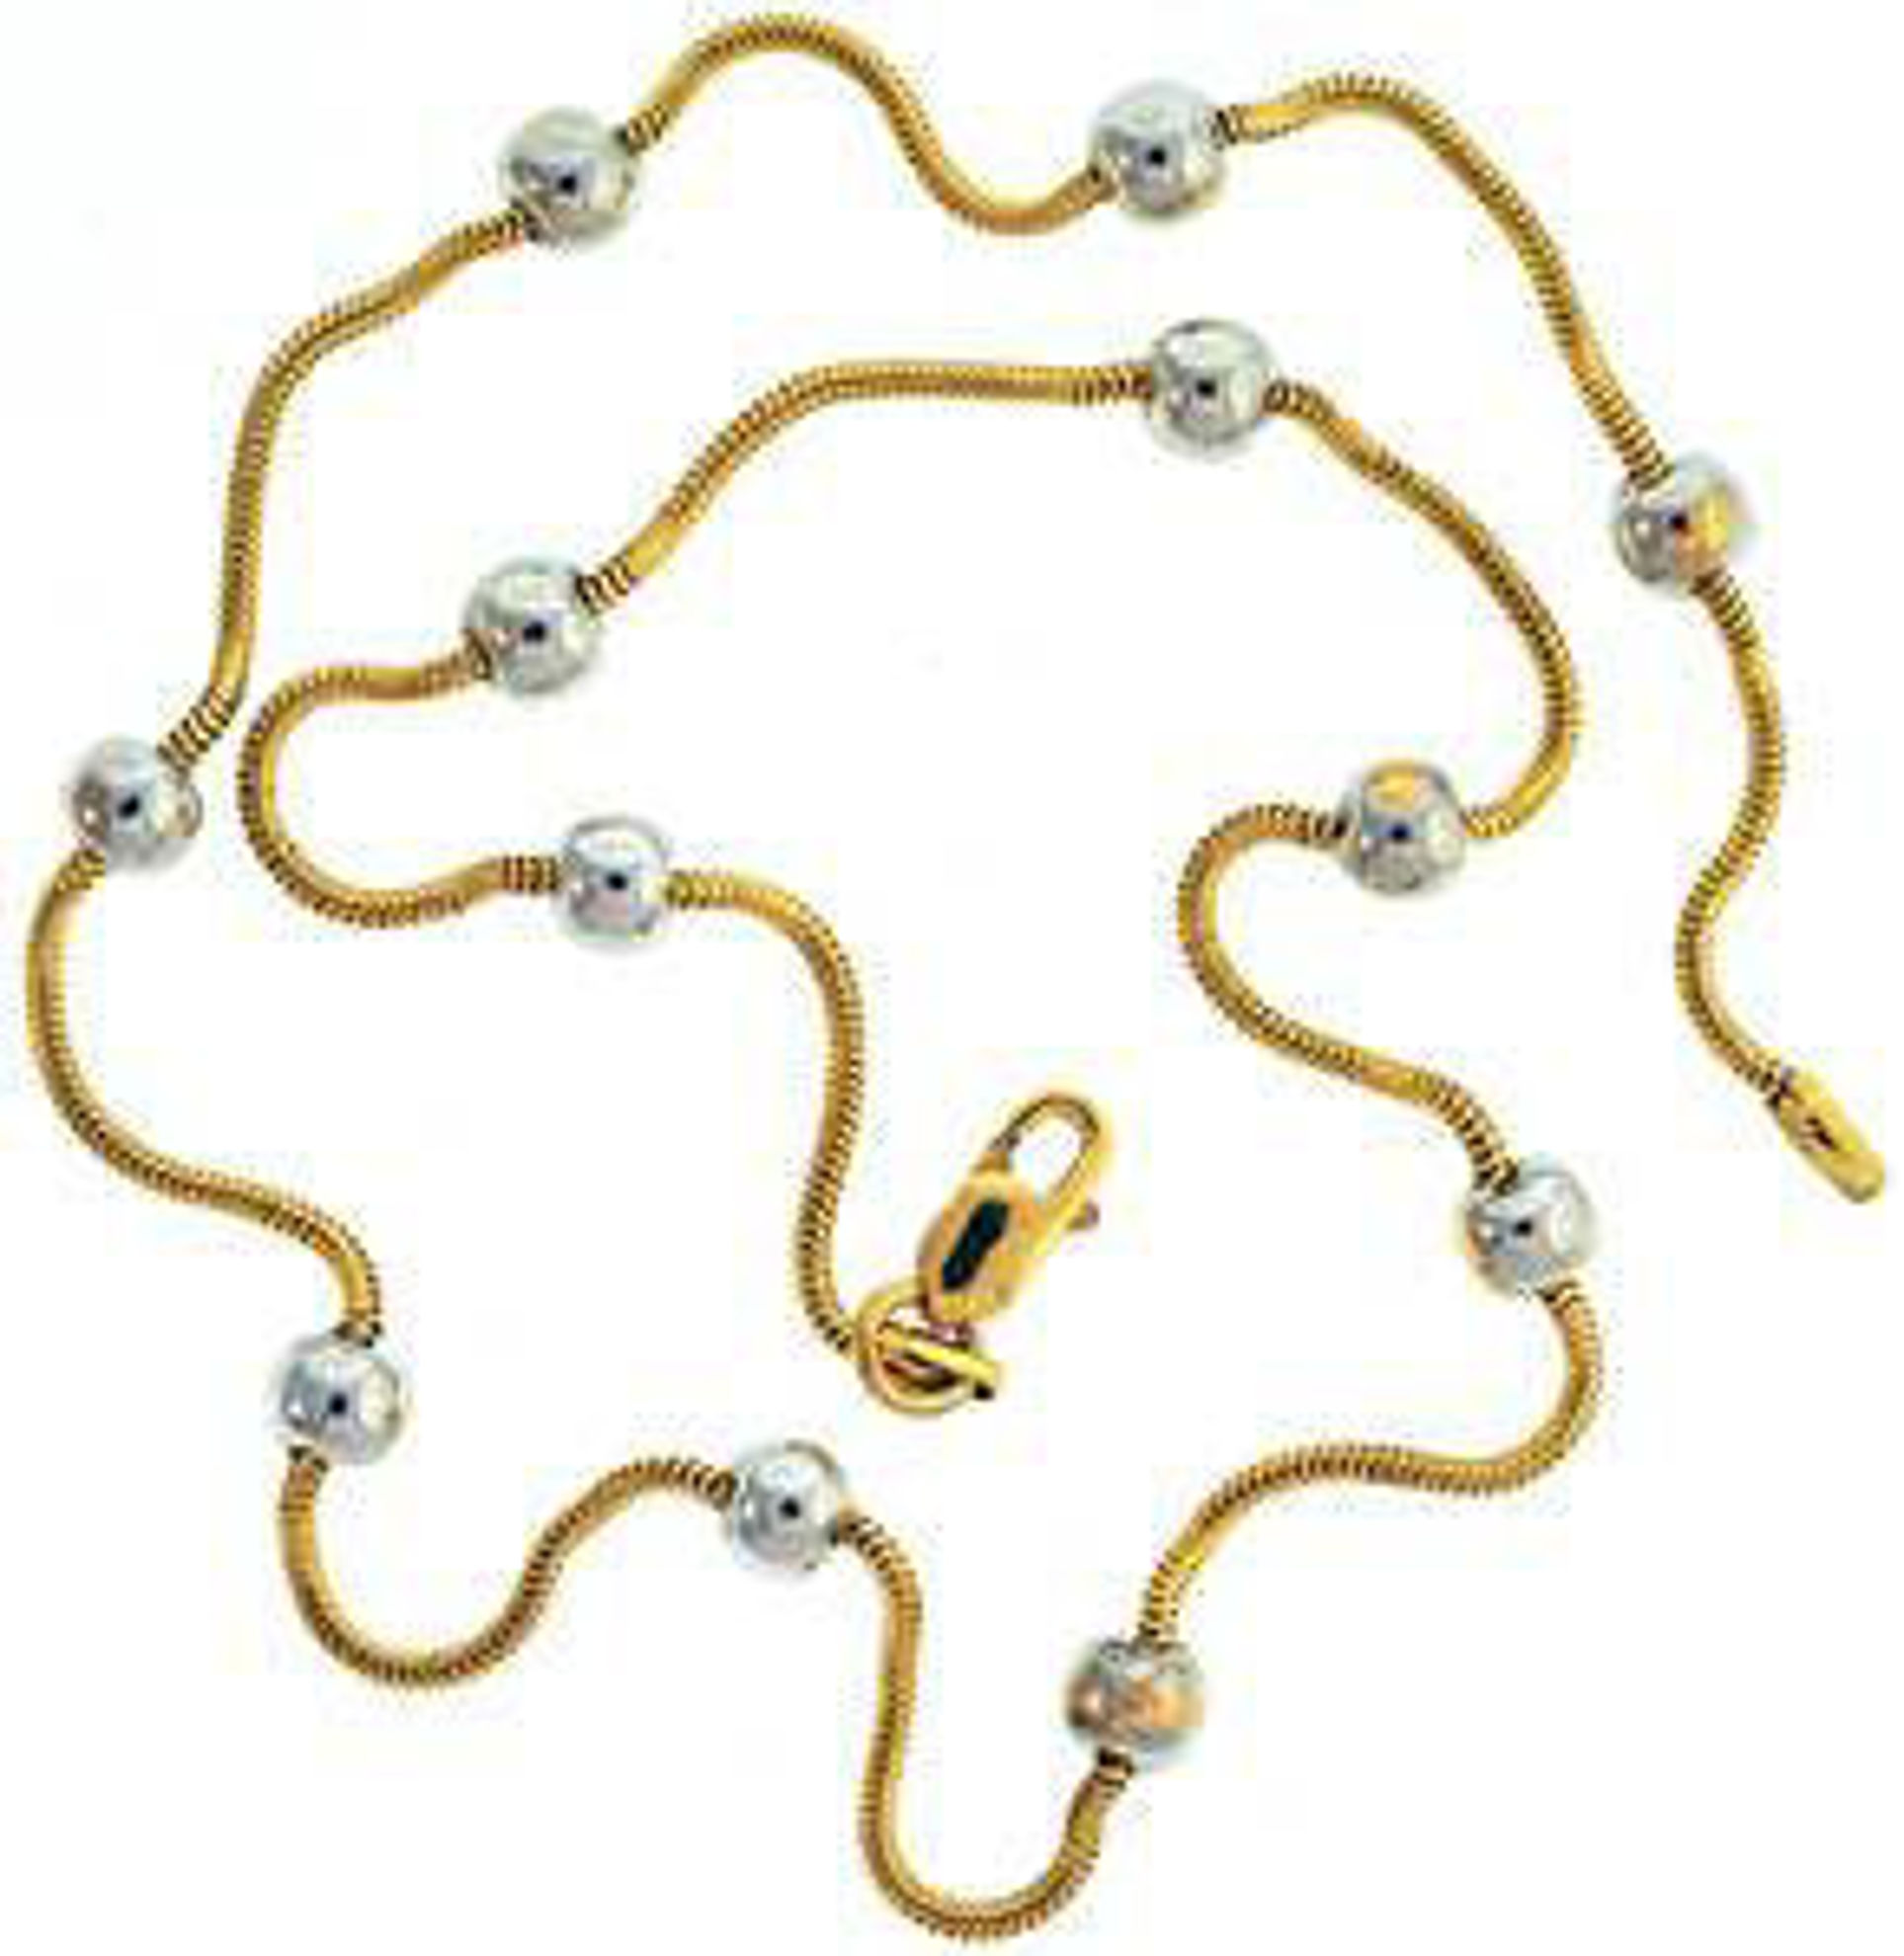 Picture of Necklaces 18kt-5.6 DWT, 8.7 Grams